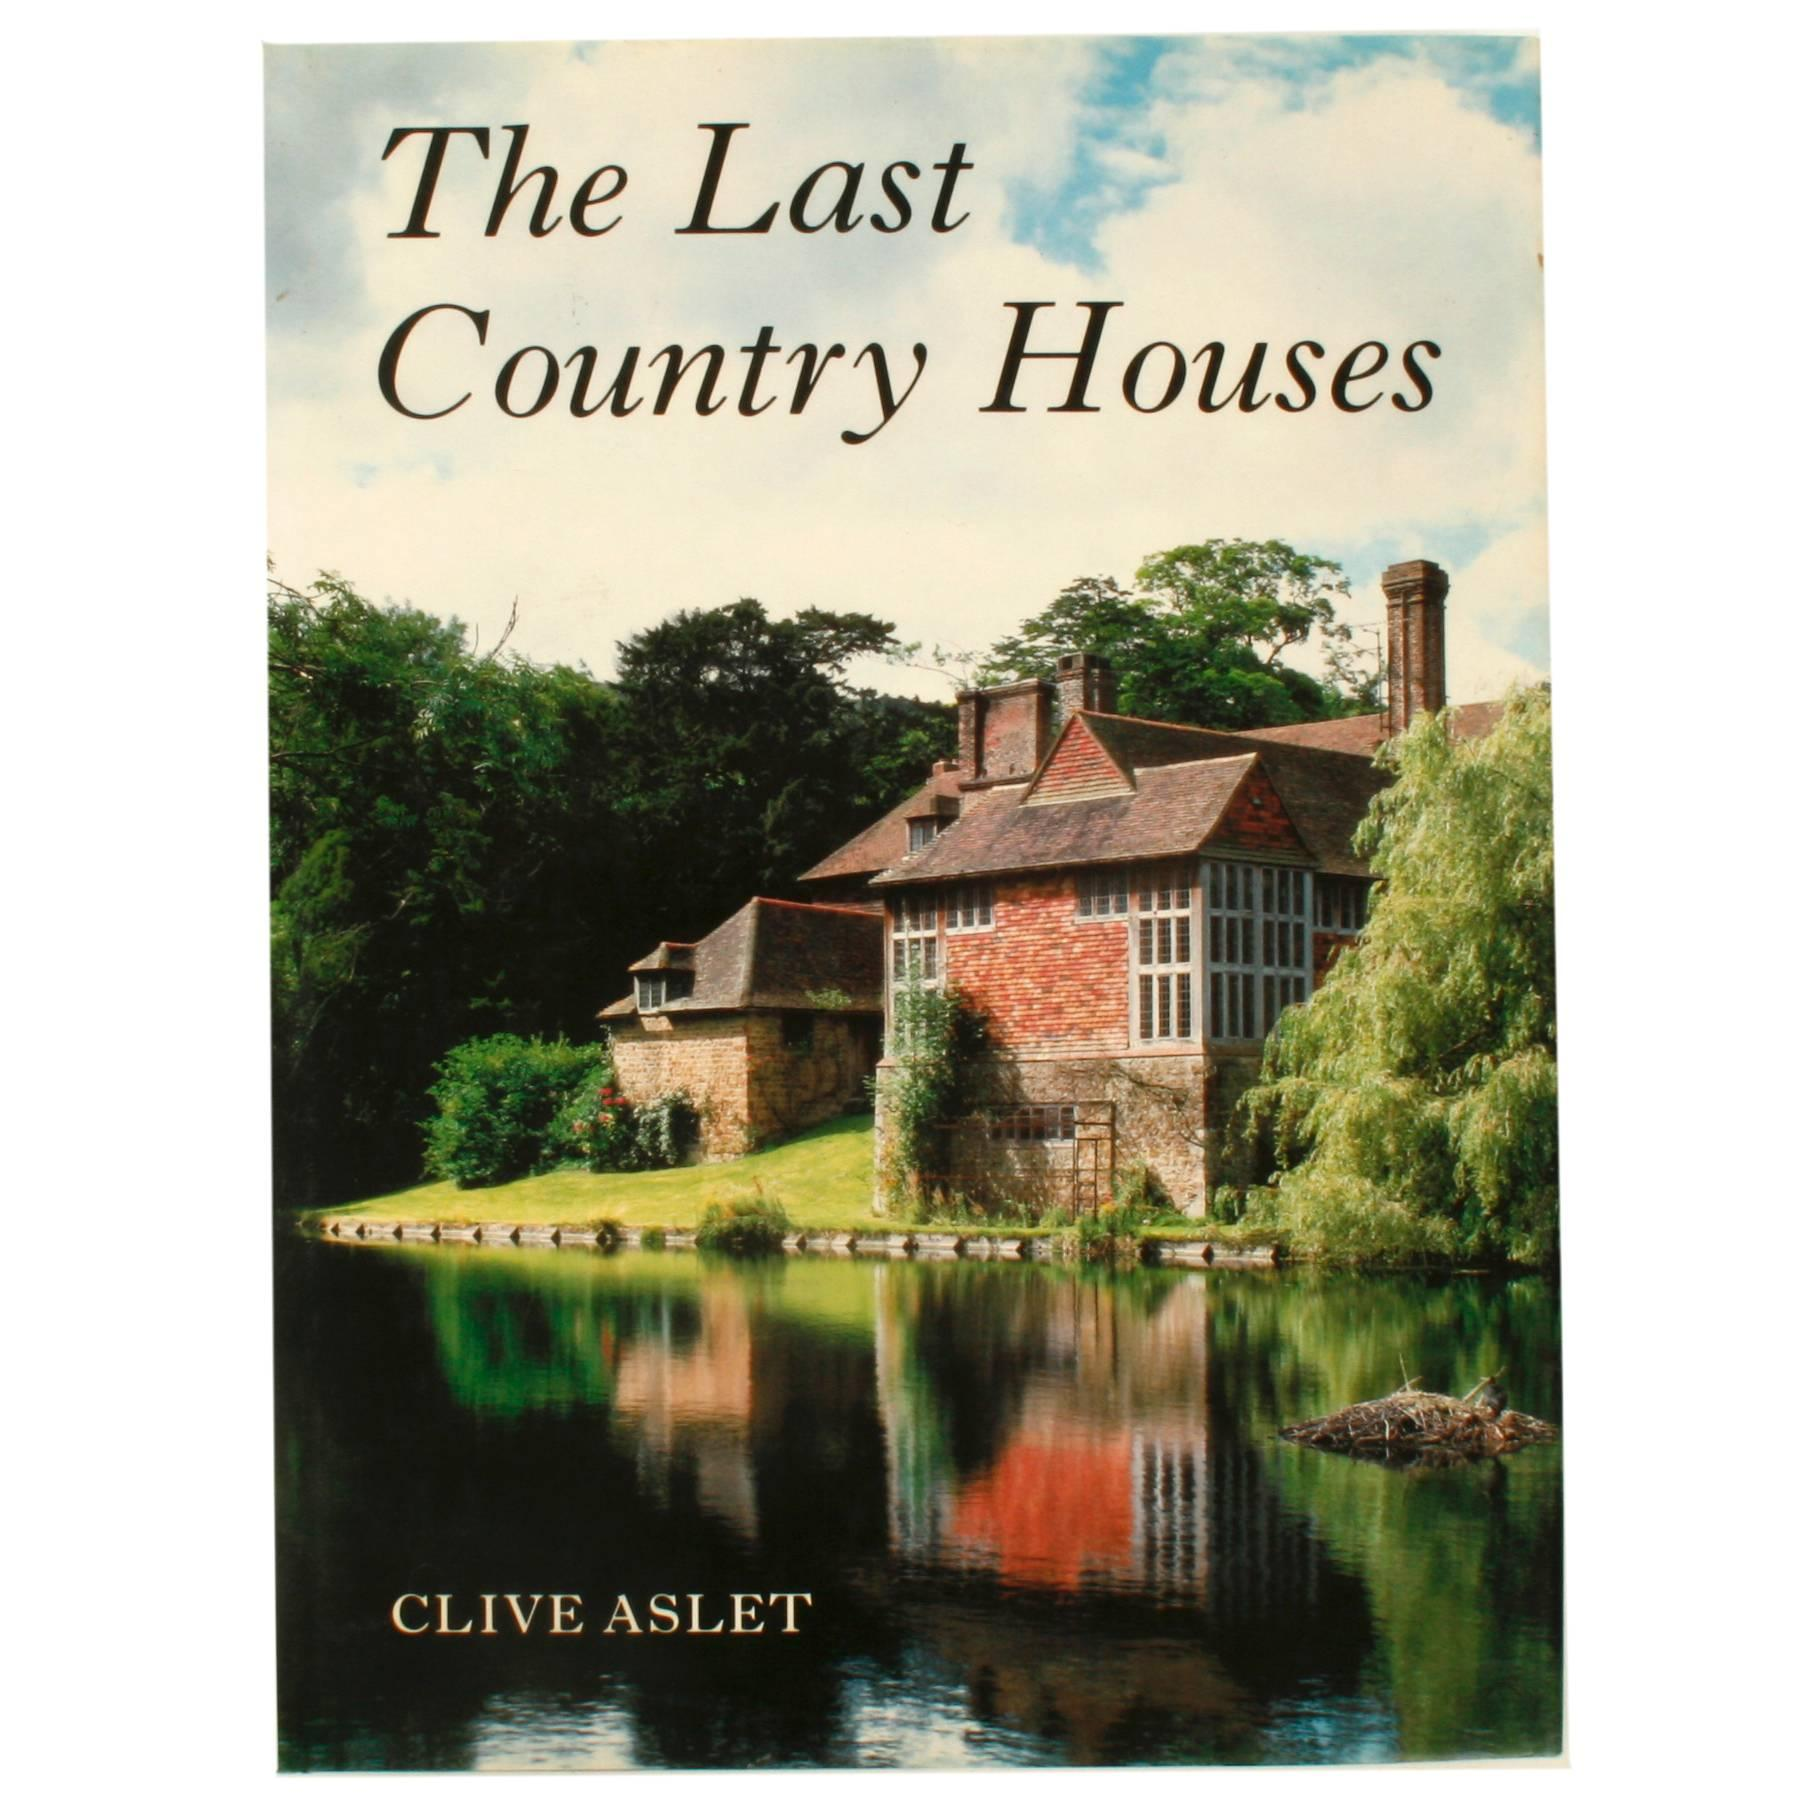 The Last Country Houses by Clive Aslet, 1st Ed